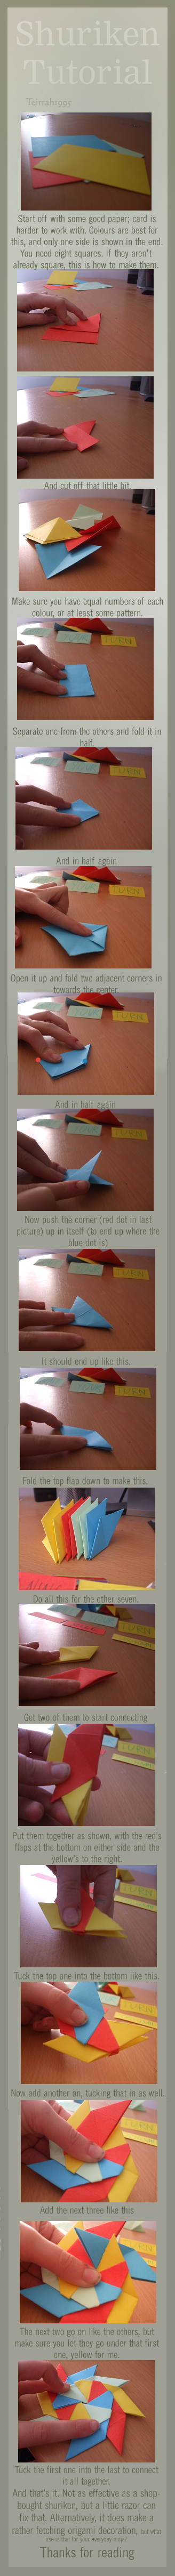 'Shuriken' Origami Tutorial by teirrah1995